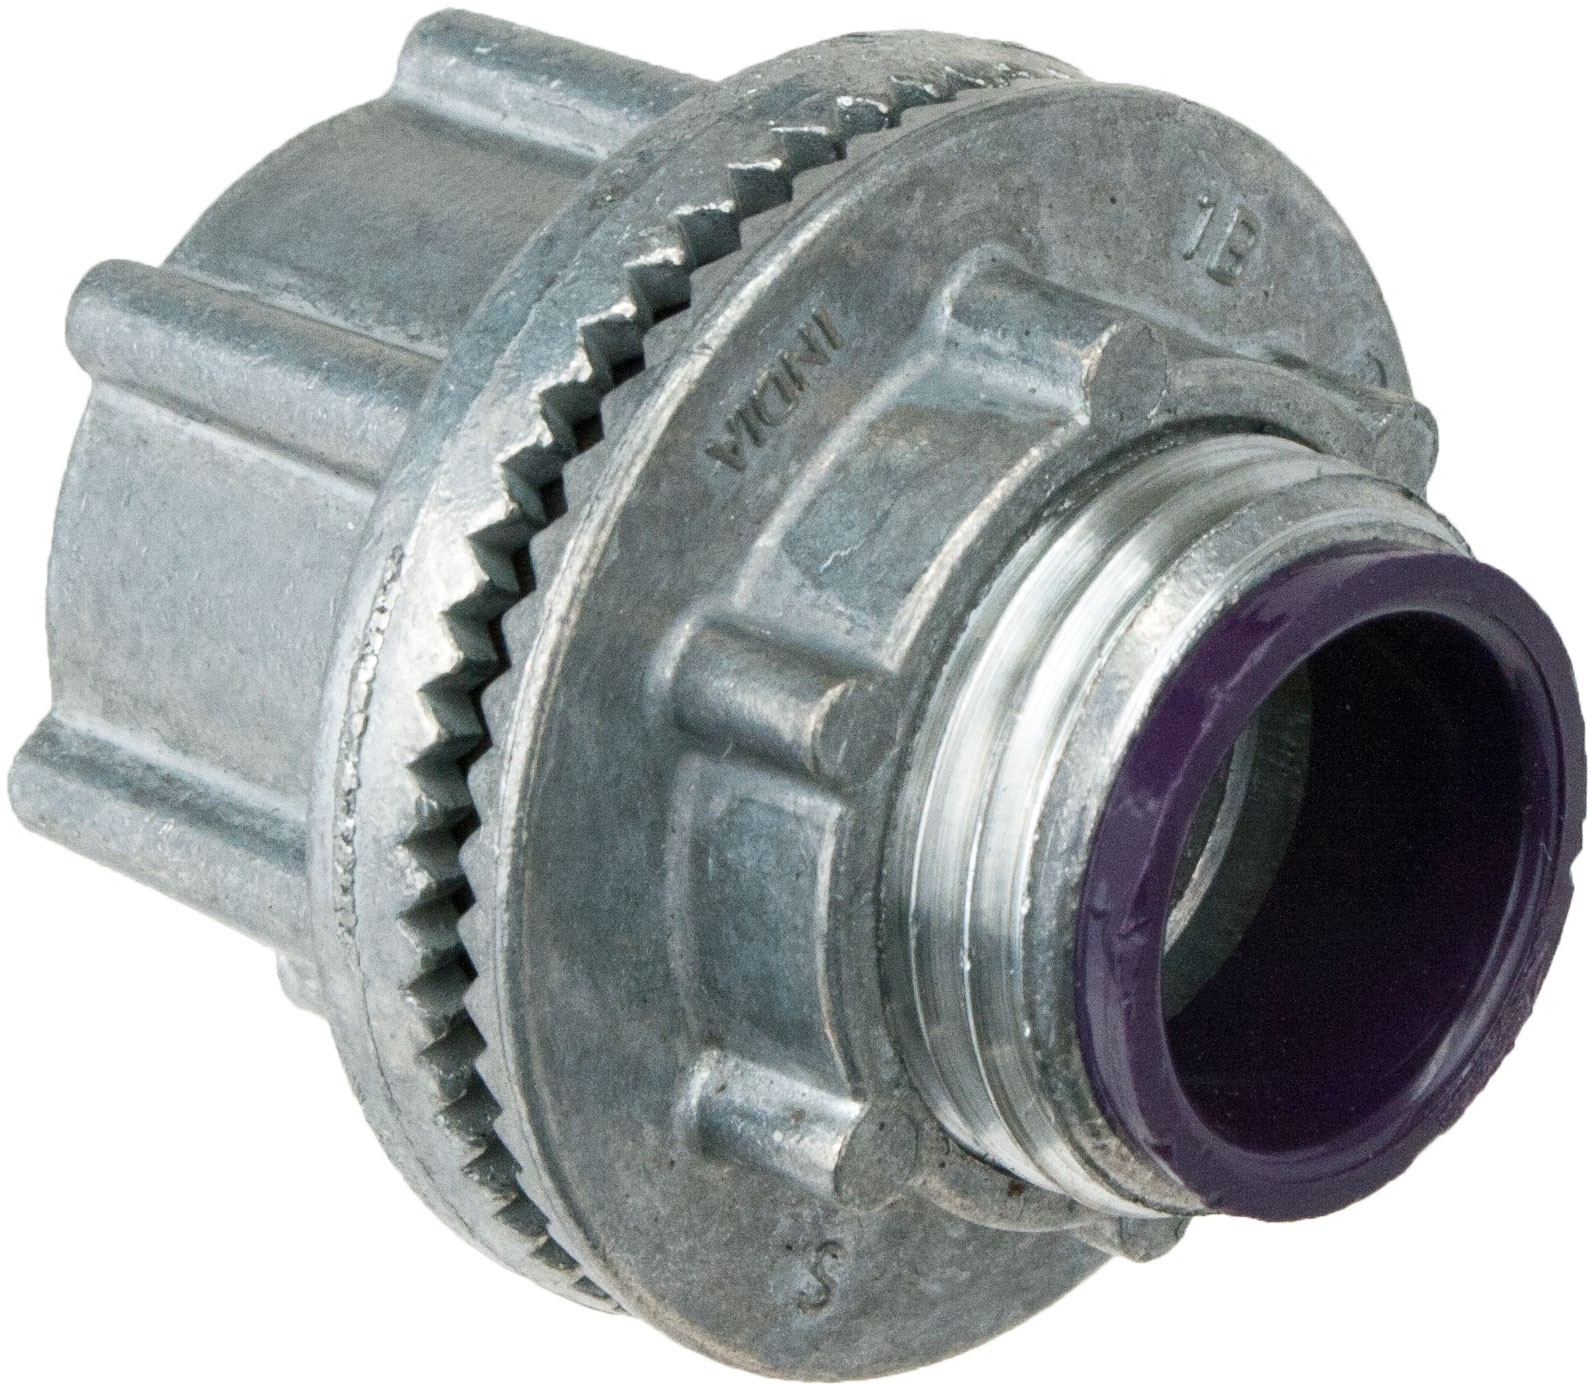 1 2 Npt Watertight Conduit Hub Wh Elecdirect Cole Hersee Heavy Duty Spdt Momentary Toggle Switch 5502155021bx